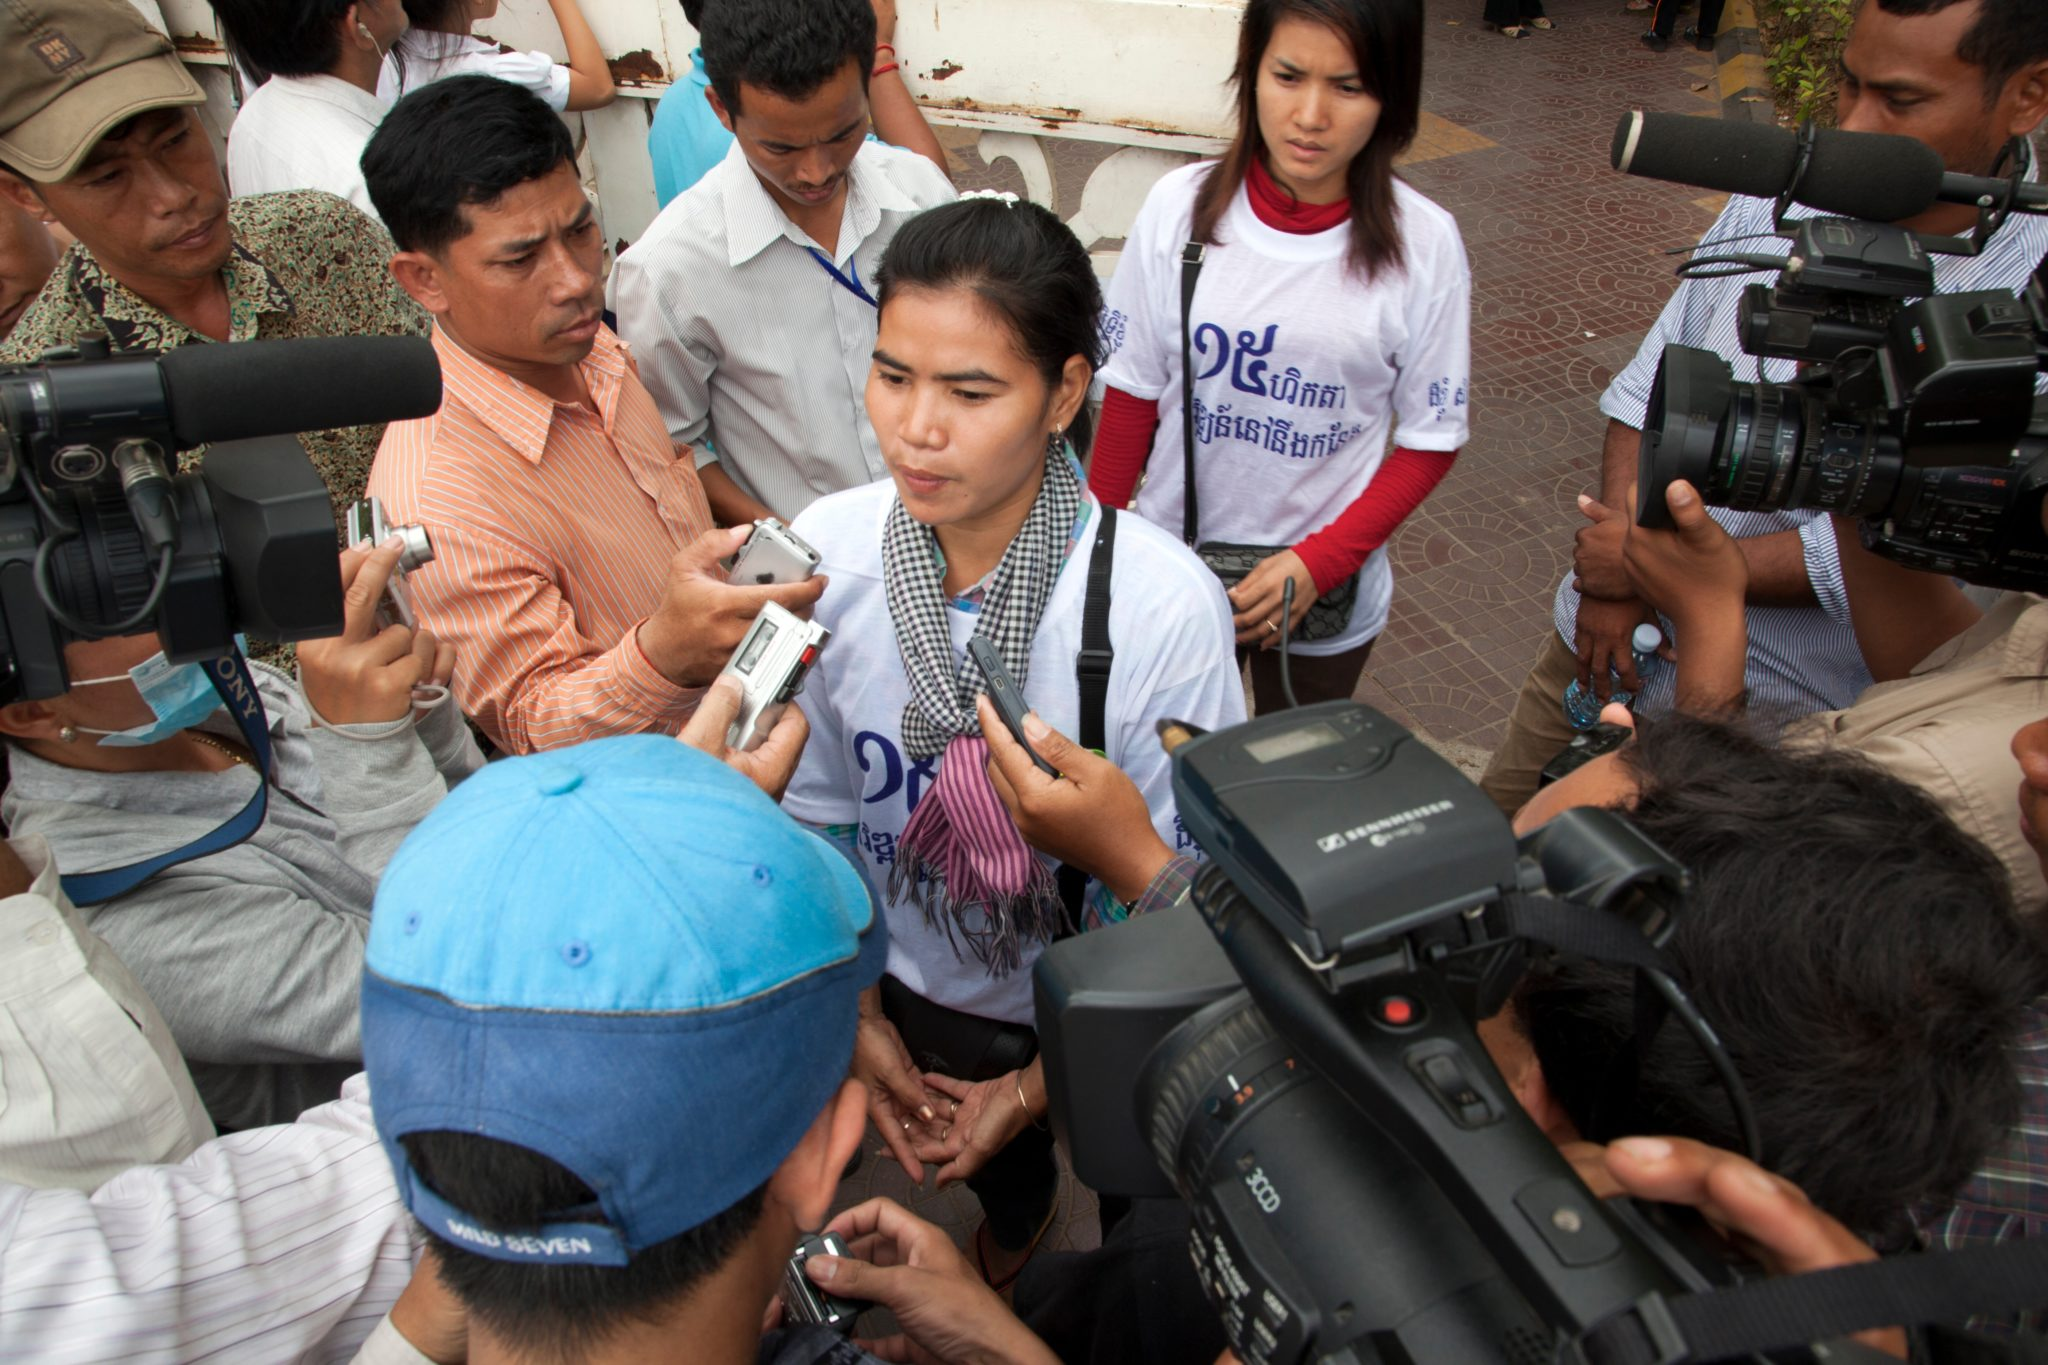 Cambodia: NGOs join calls for Tep Vanny's release one year after arrest